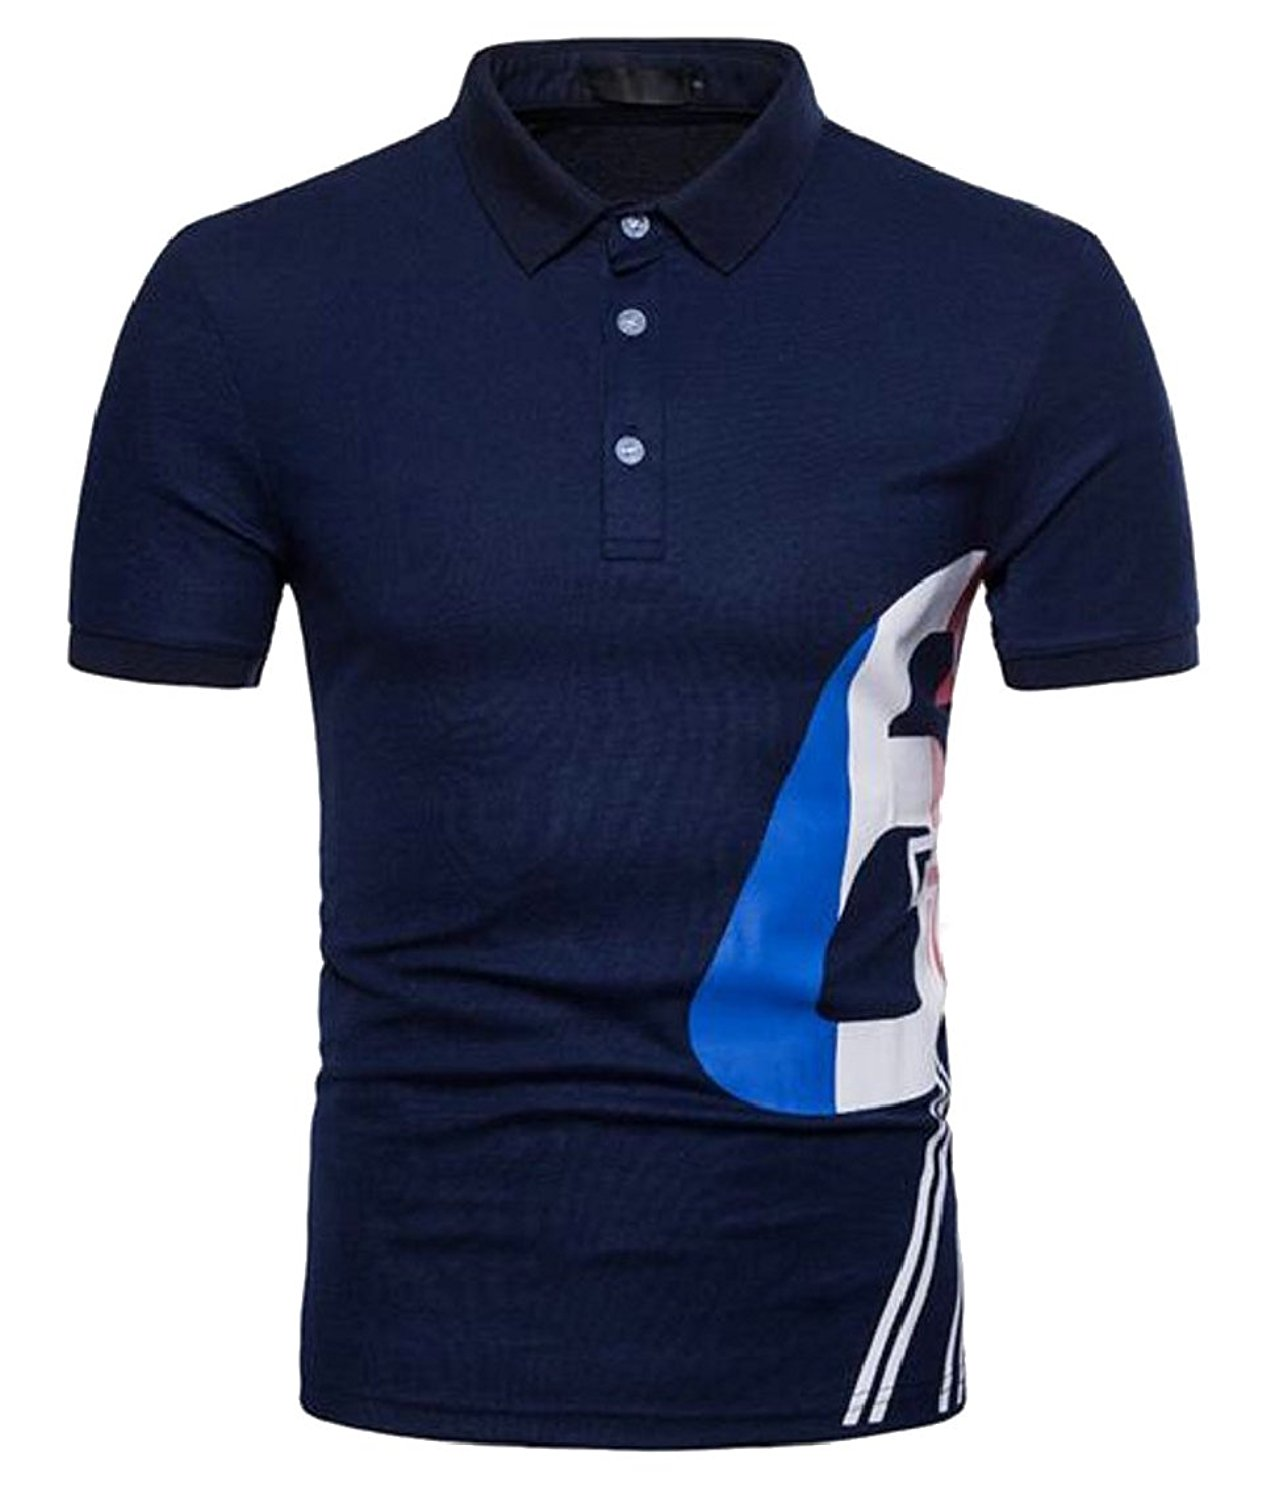 XiaoTianXin-men clothes XTX Men Turn-Down Collar Short Sleeve Letter Printed Slim Fitted Fashional Polo Shirt